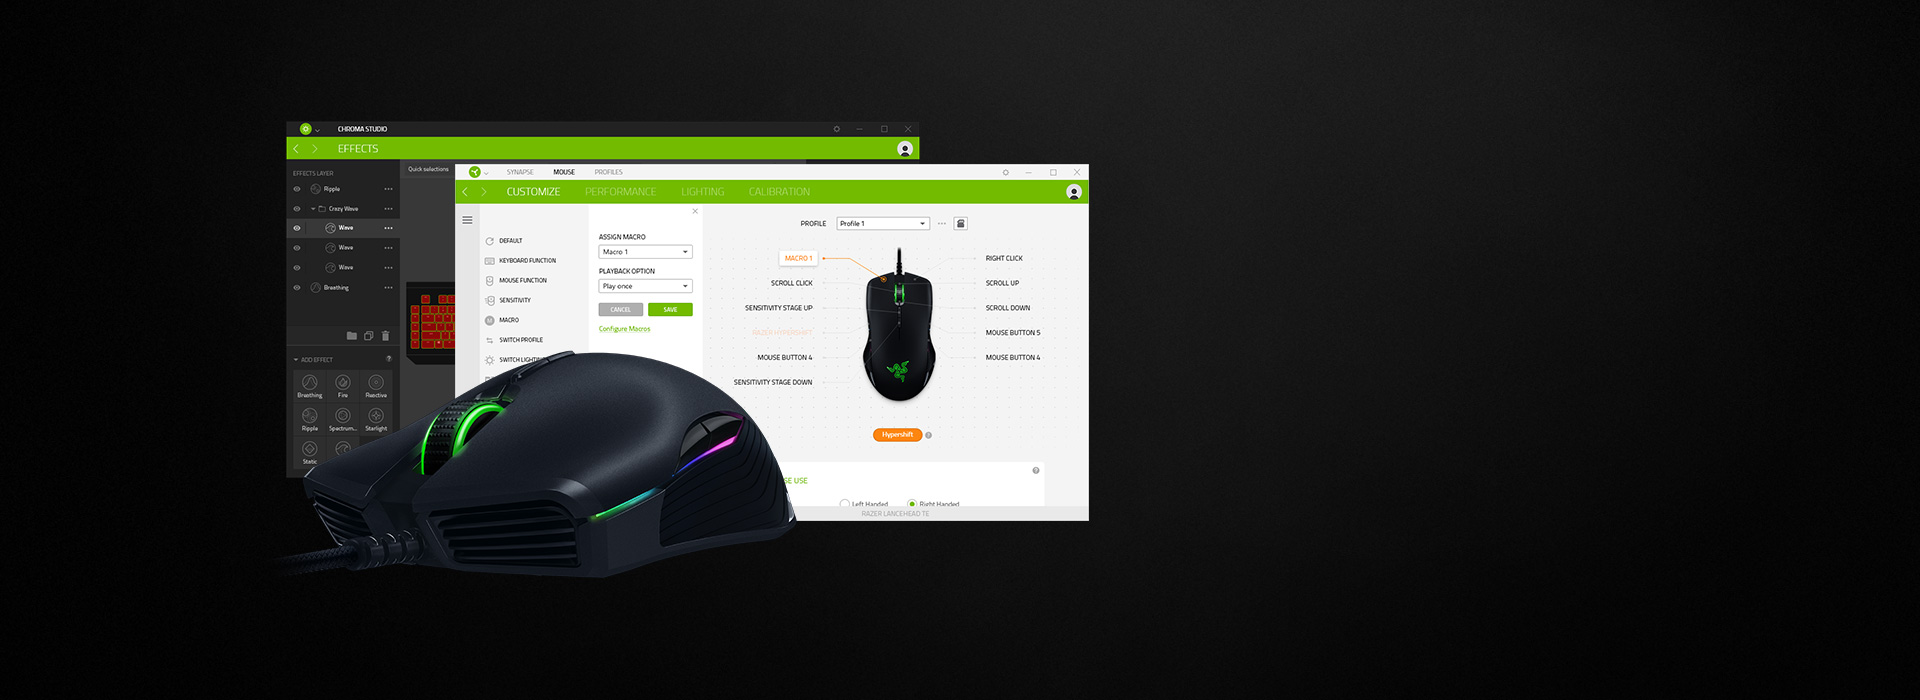 d40b0d2cb60 Razer Synapse 3 BETA. Razer Synapse 3 is the next generation unified hardware  configuration tool ...